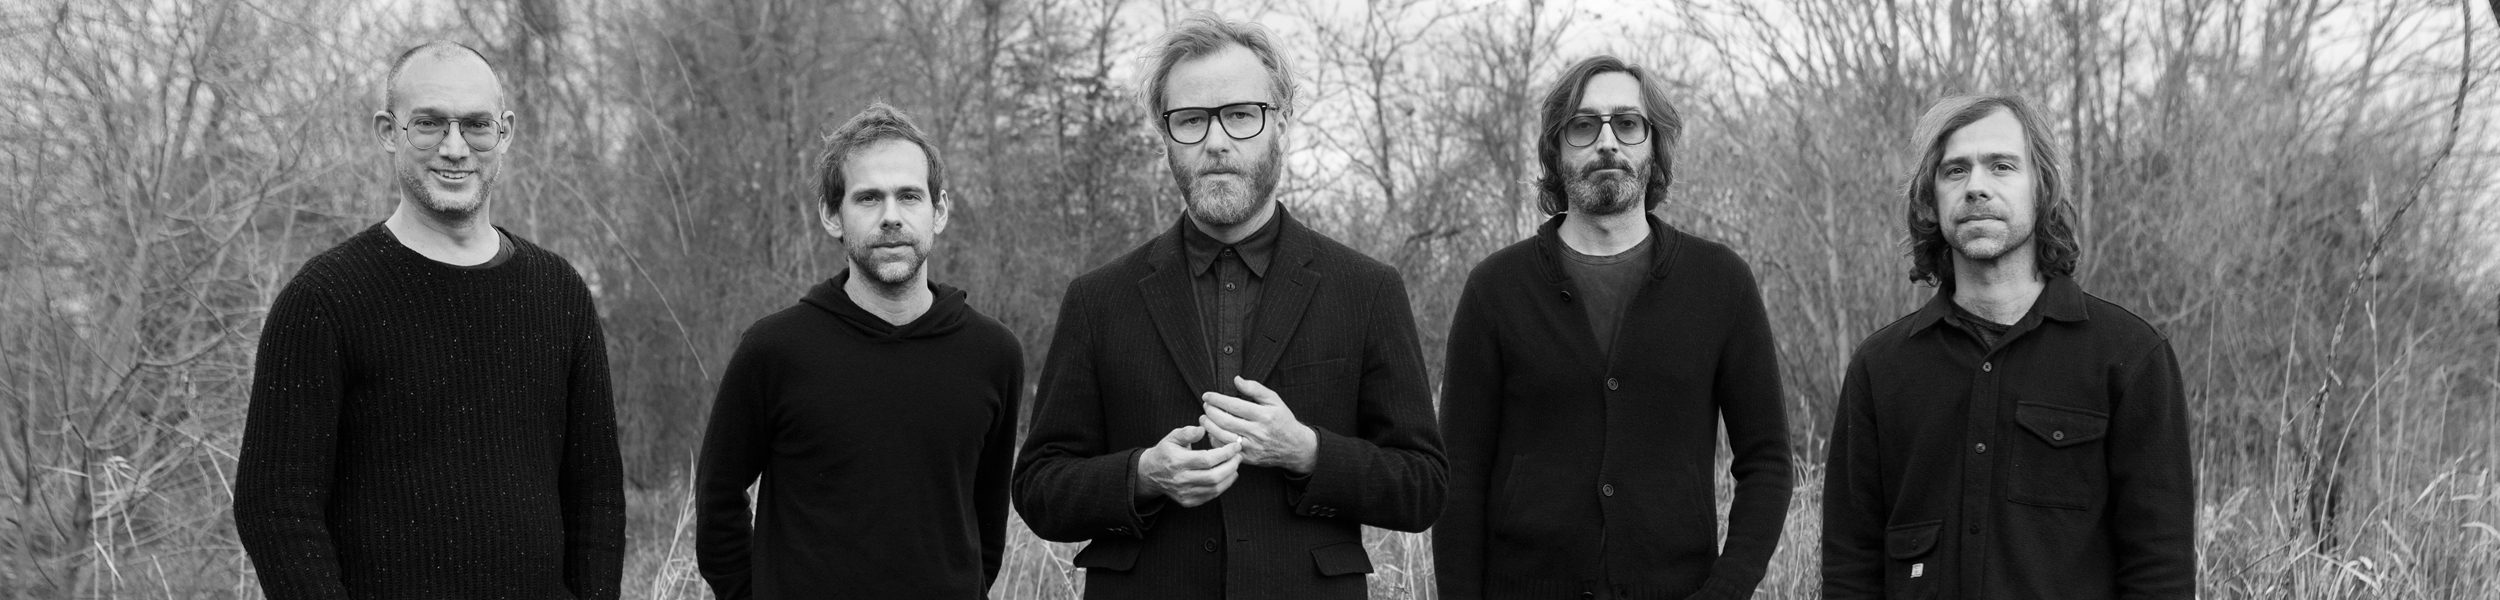 The National - UK & Ireland 'Mistaken For Strangers' Screenings Detailed